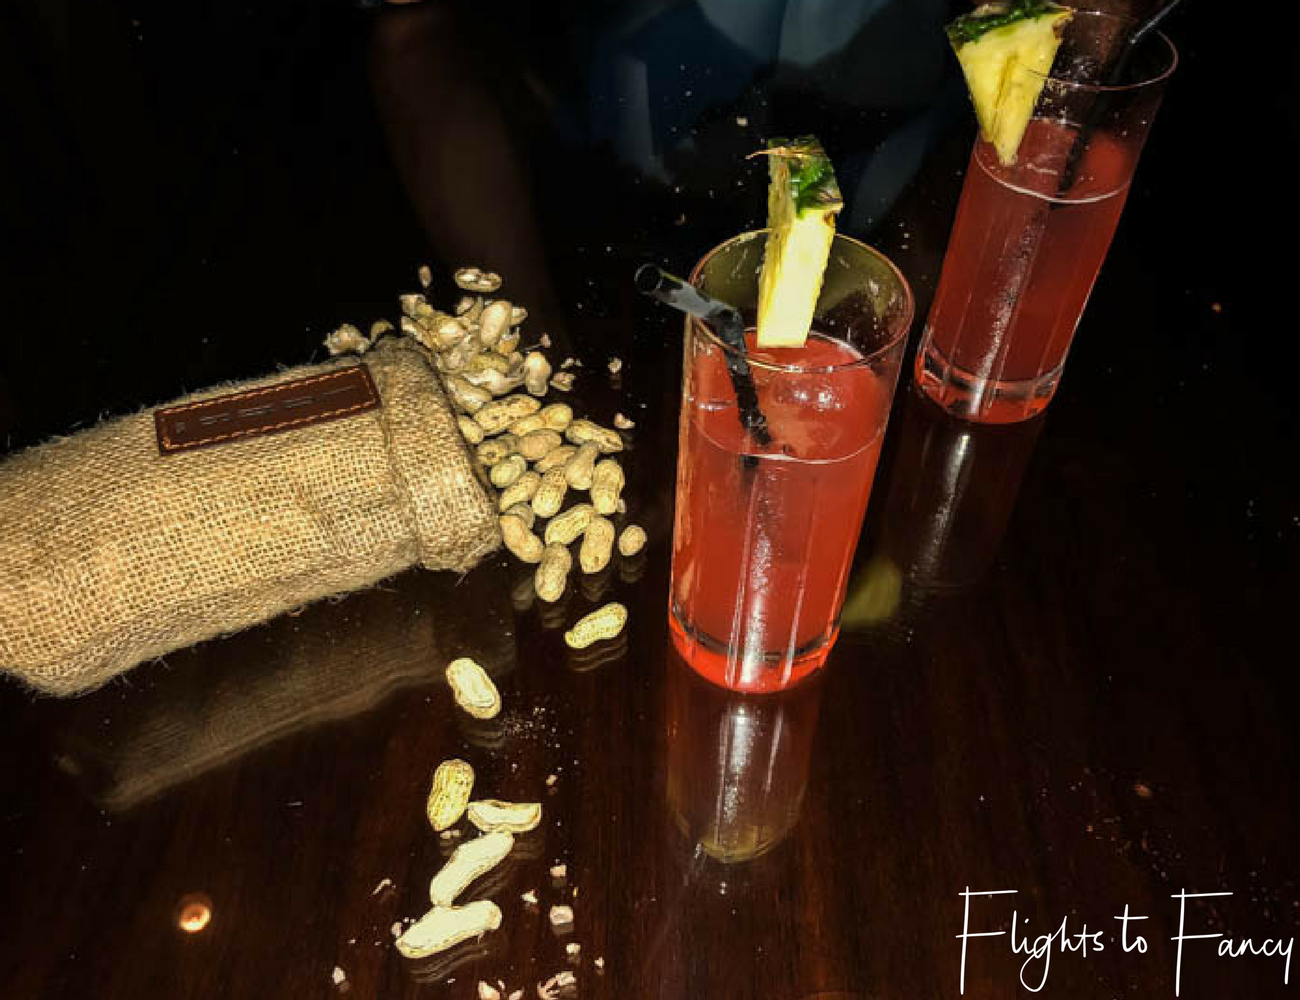 Flights To Fancy @ Raffles Makati Manila - The perfect combination of cocktails and peanuts